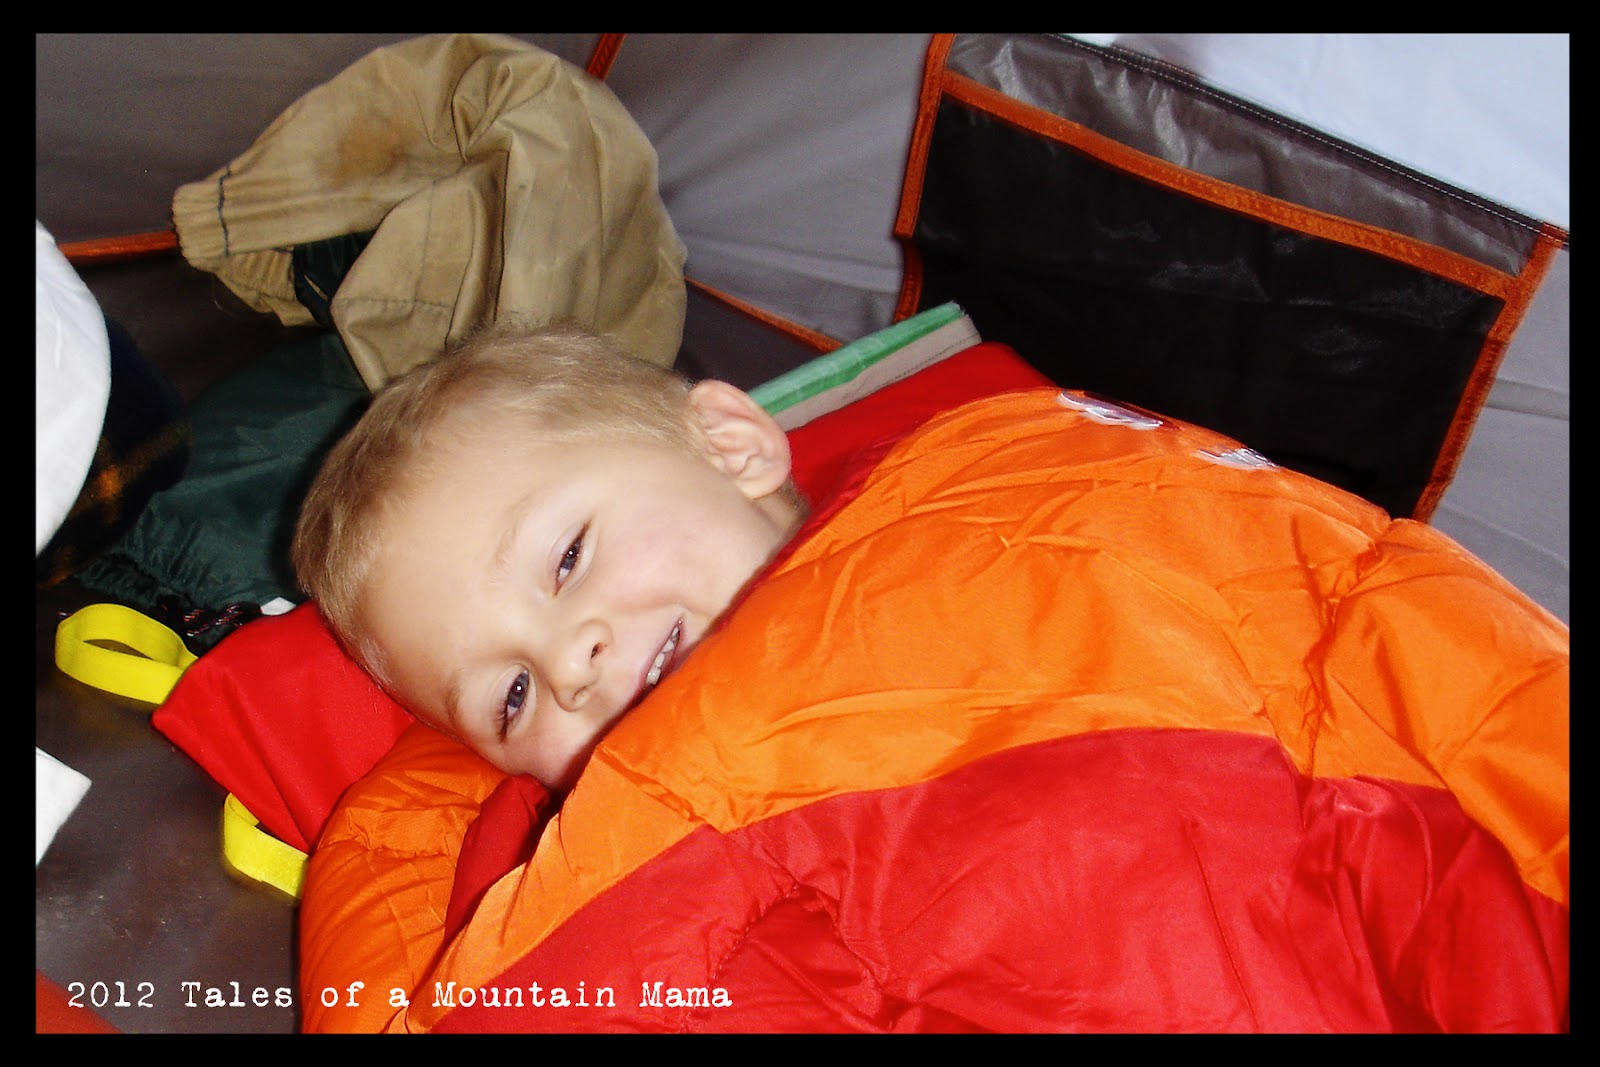 camping in the backyard is camping tales of a mountain mama